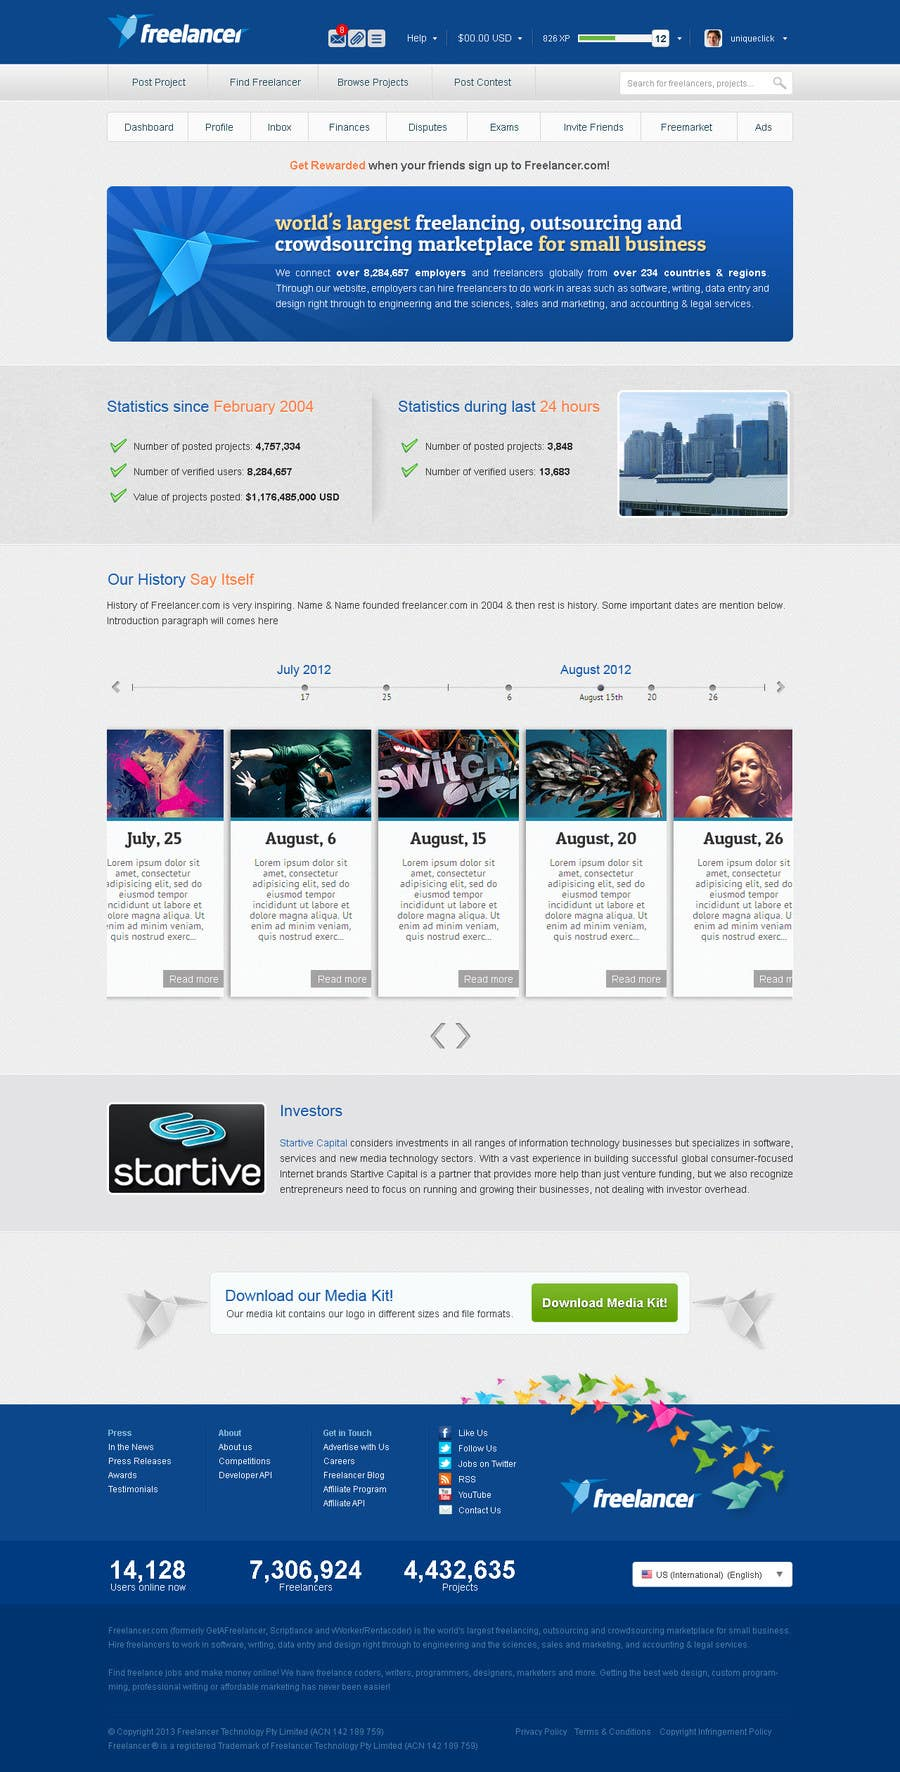 Bài tham dự cuộc thi #                                        4                                      cho                                         Create a Website Mockup for the Freelancer.com About Us Page